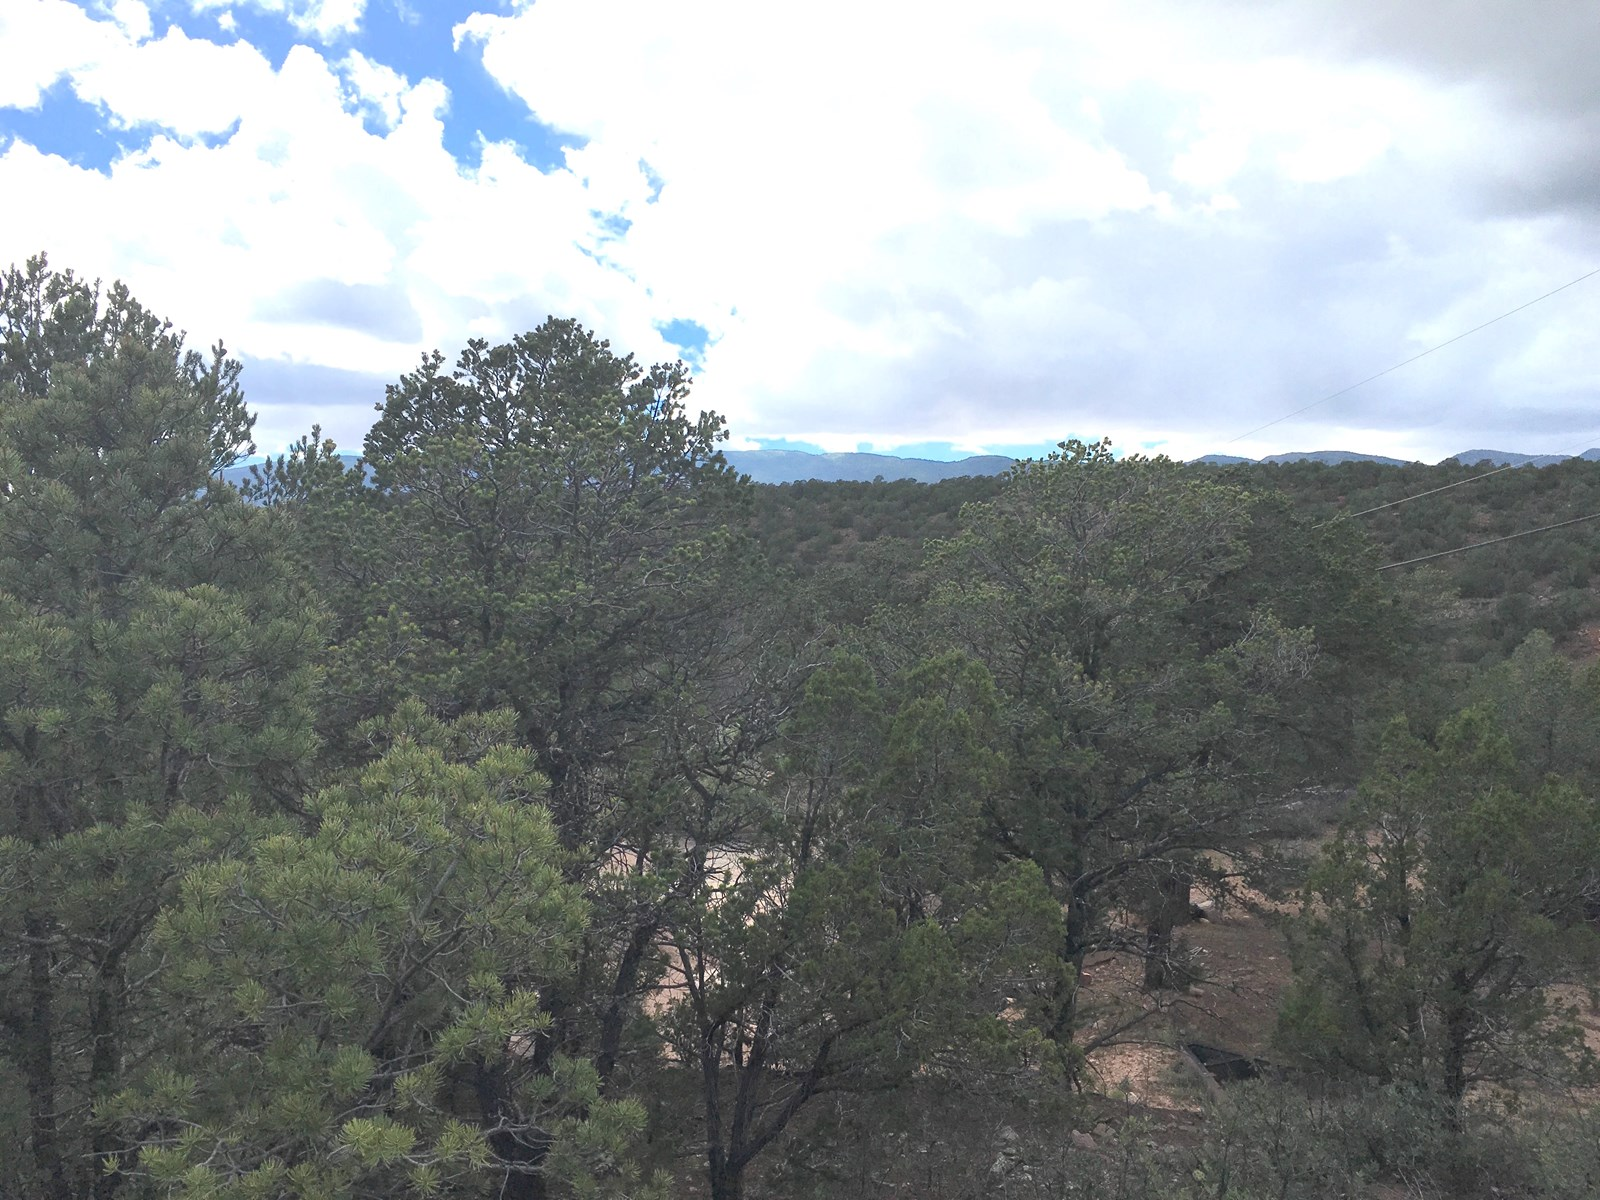 Land for sale in Tijeras Canyon